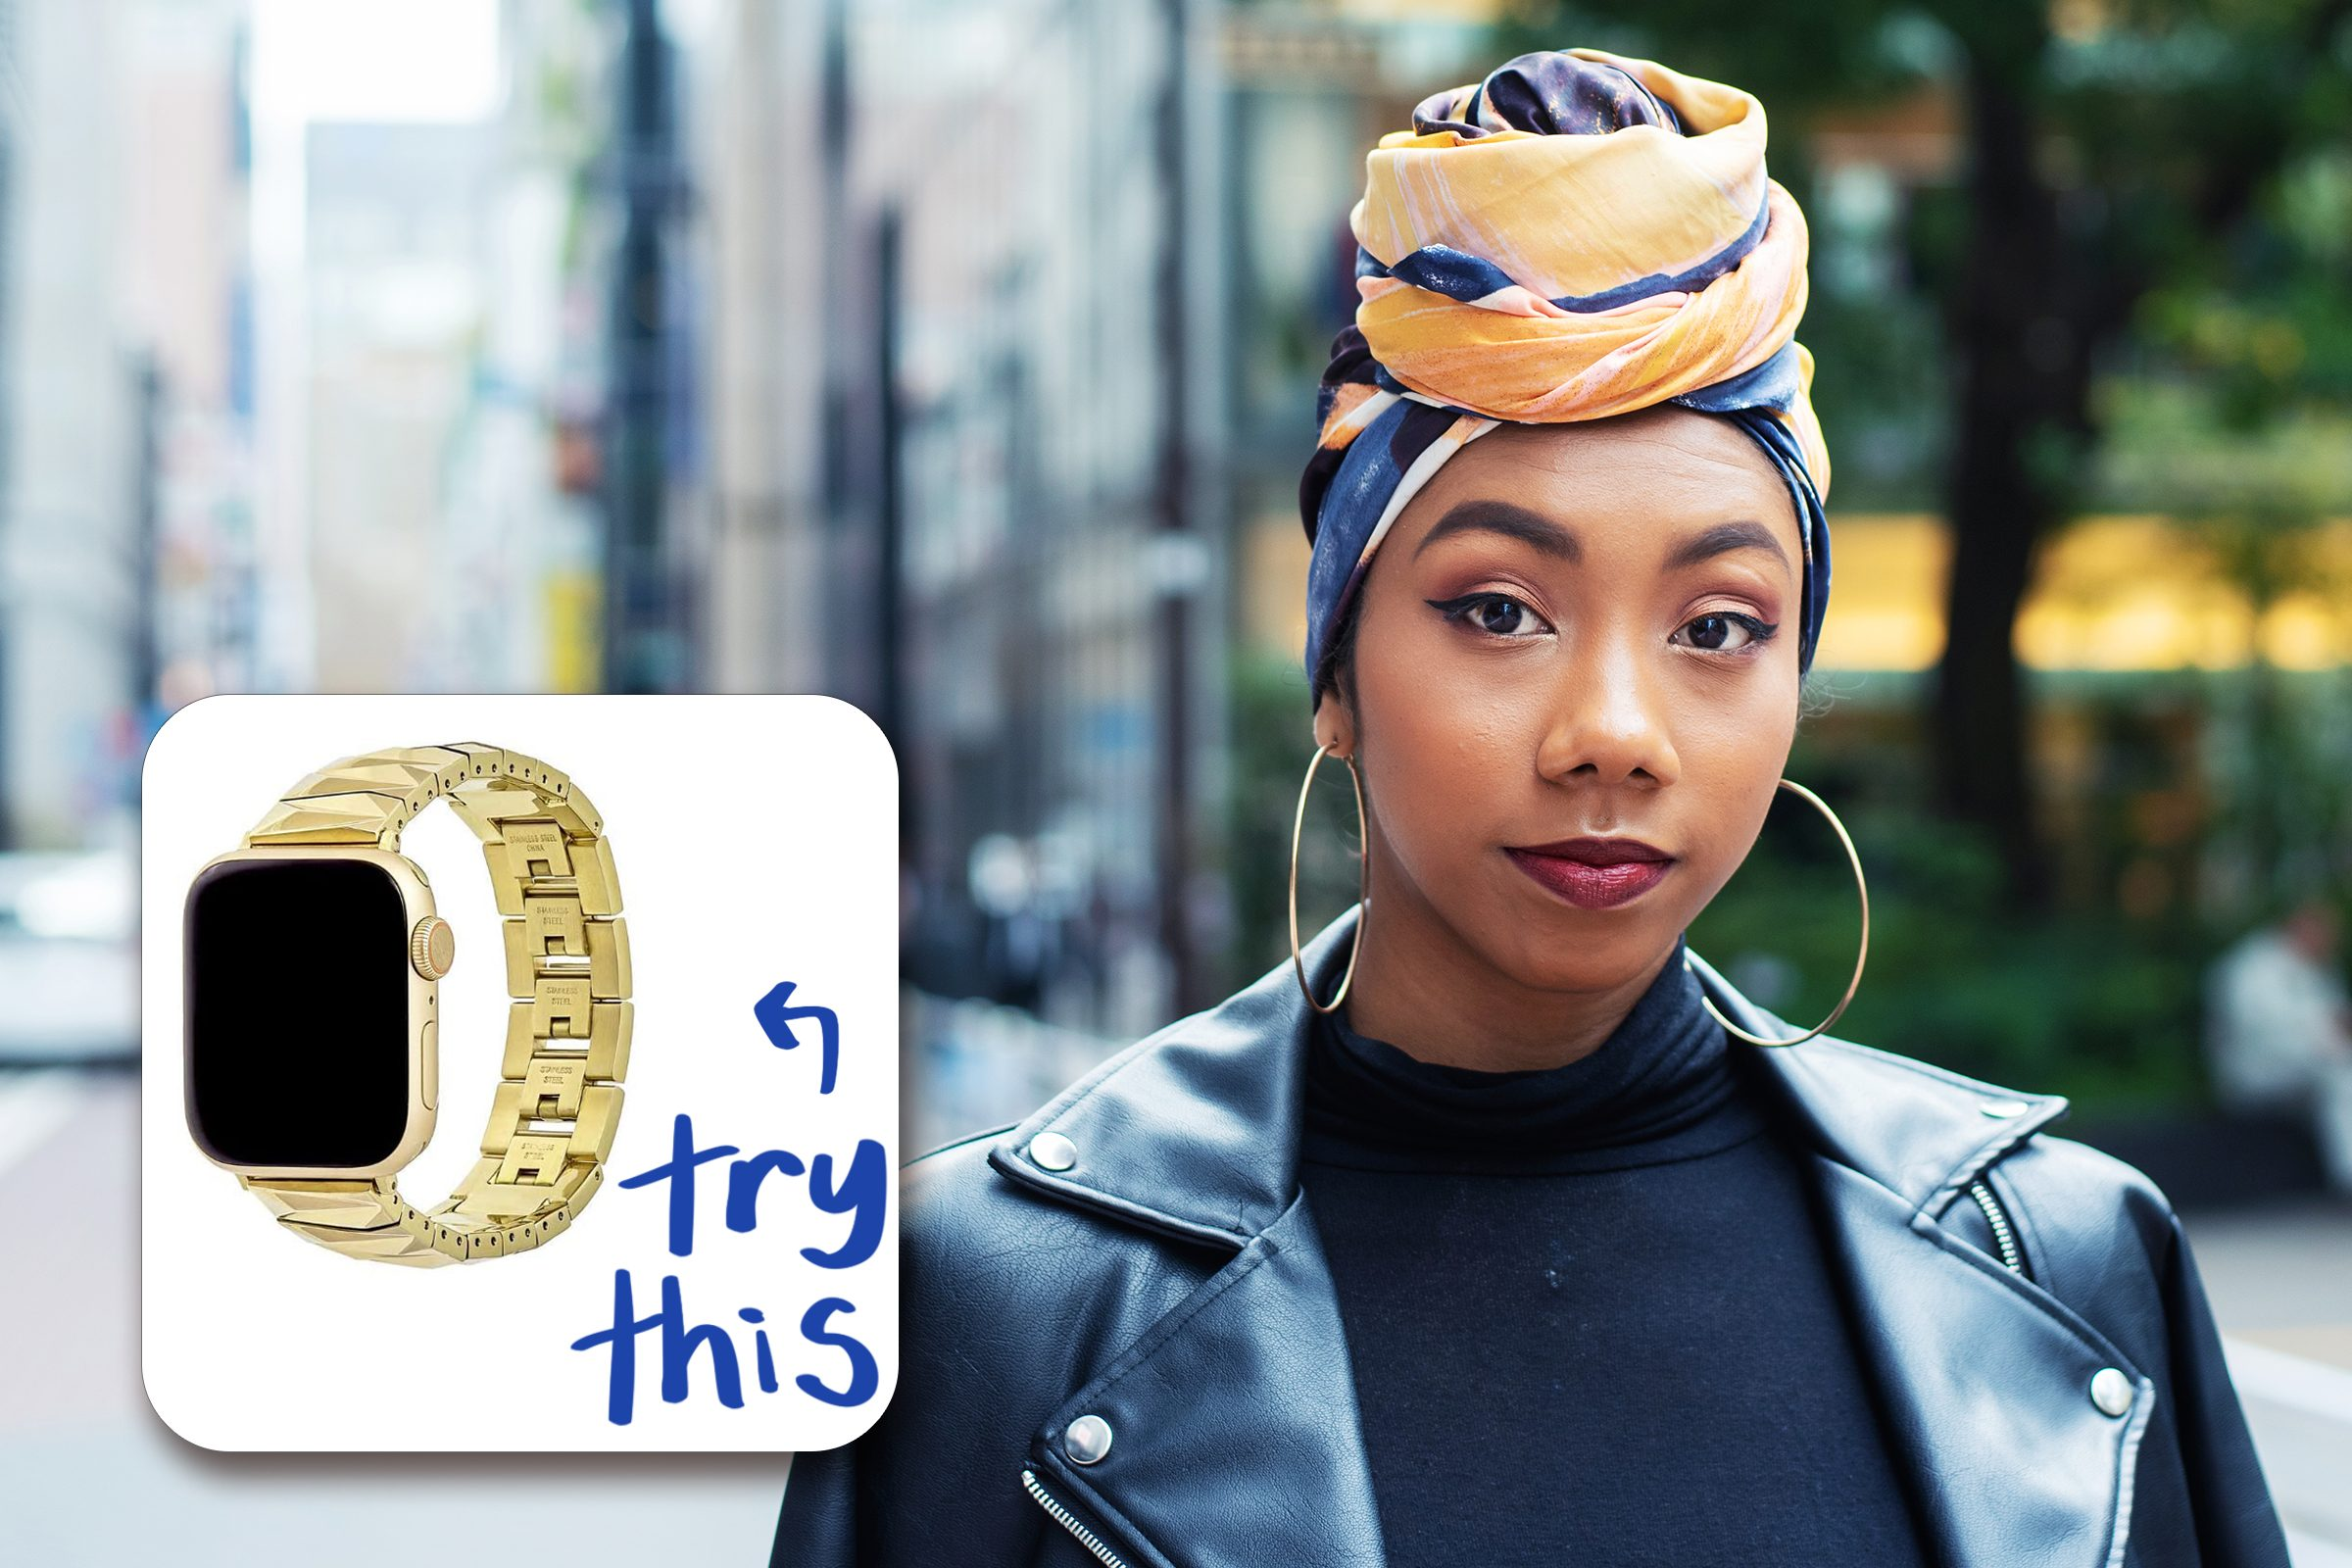 Street Portrait Of Beautiful Woman with inset of gold band for apple watch